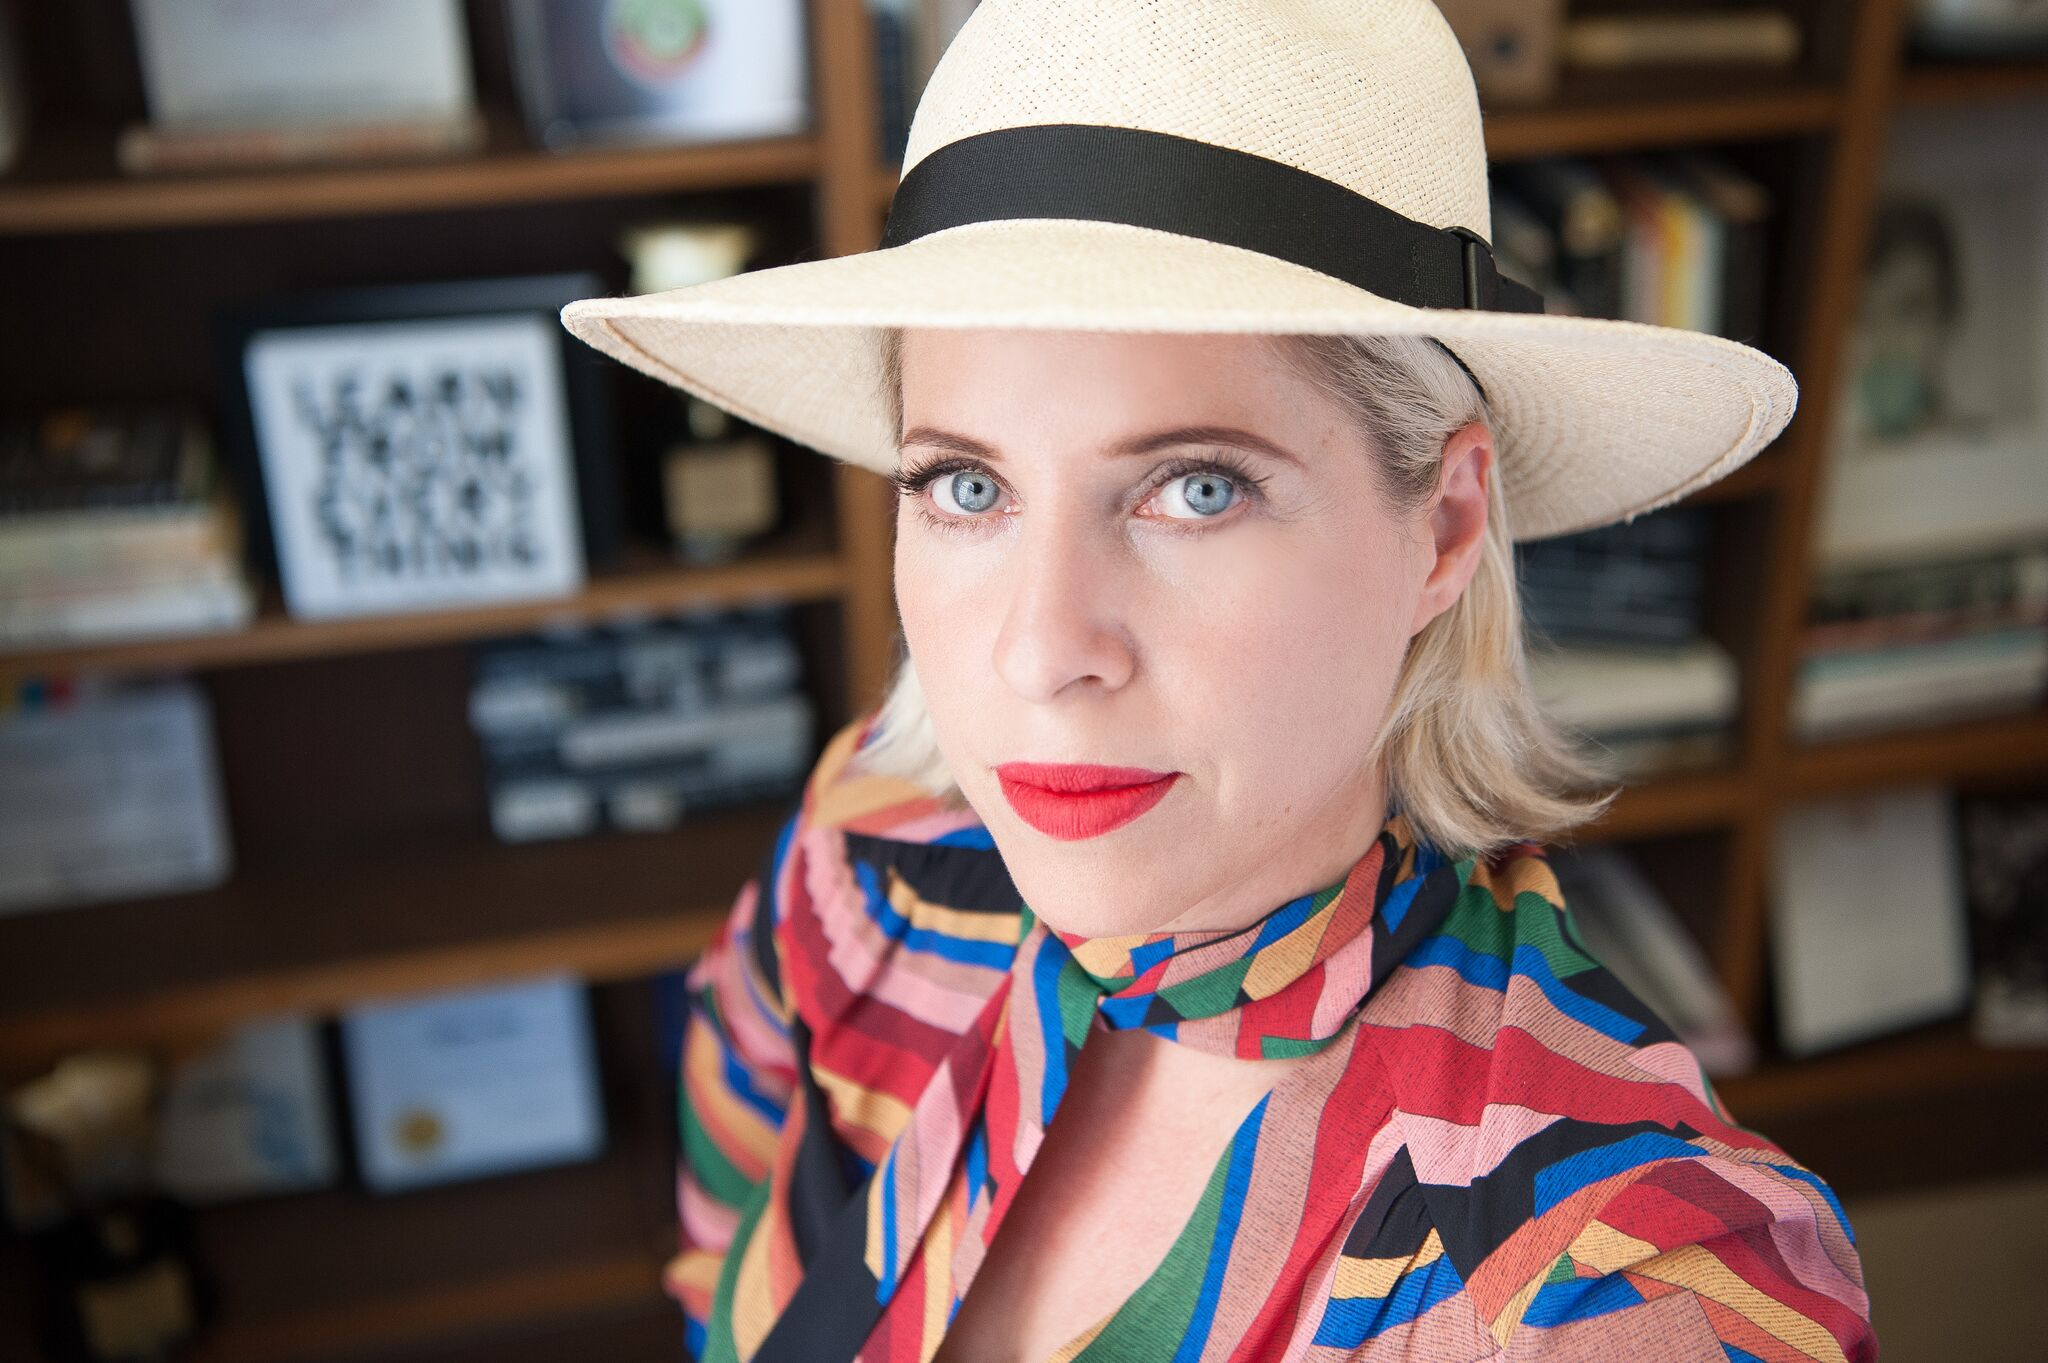 Caption: Tiffany Shlain